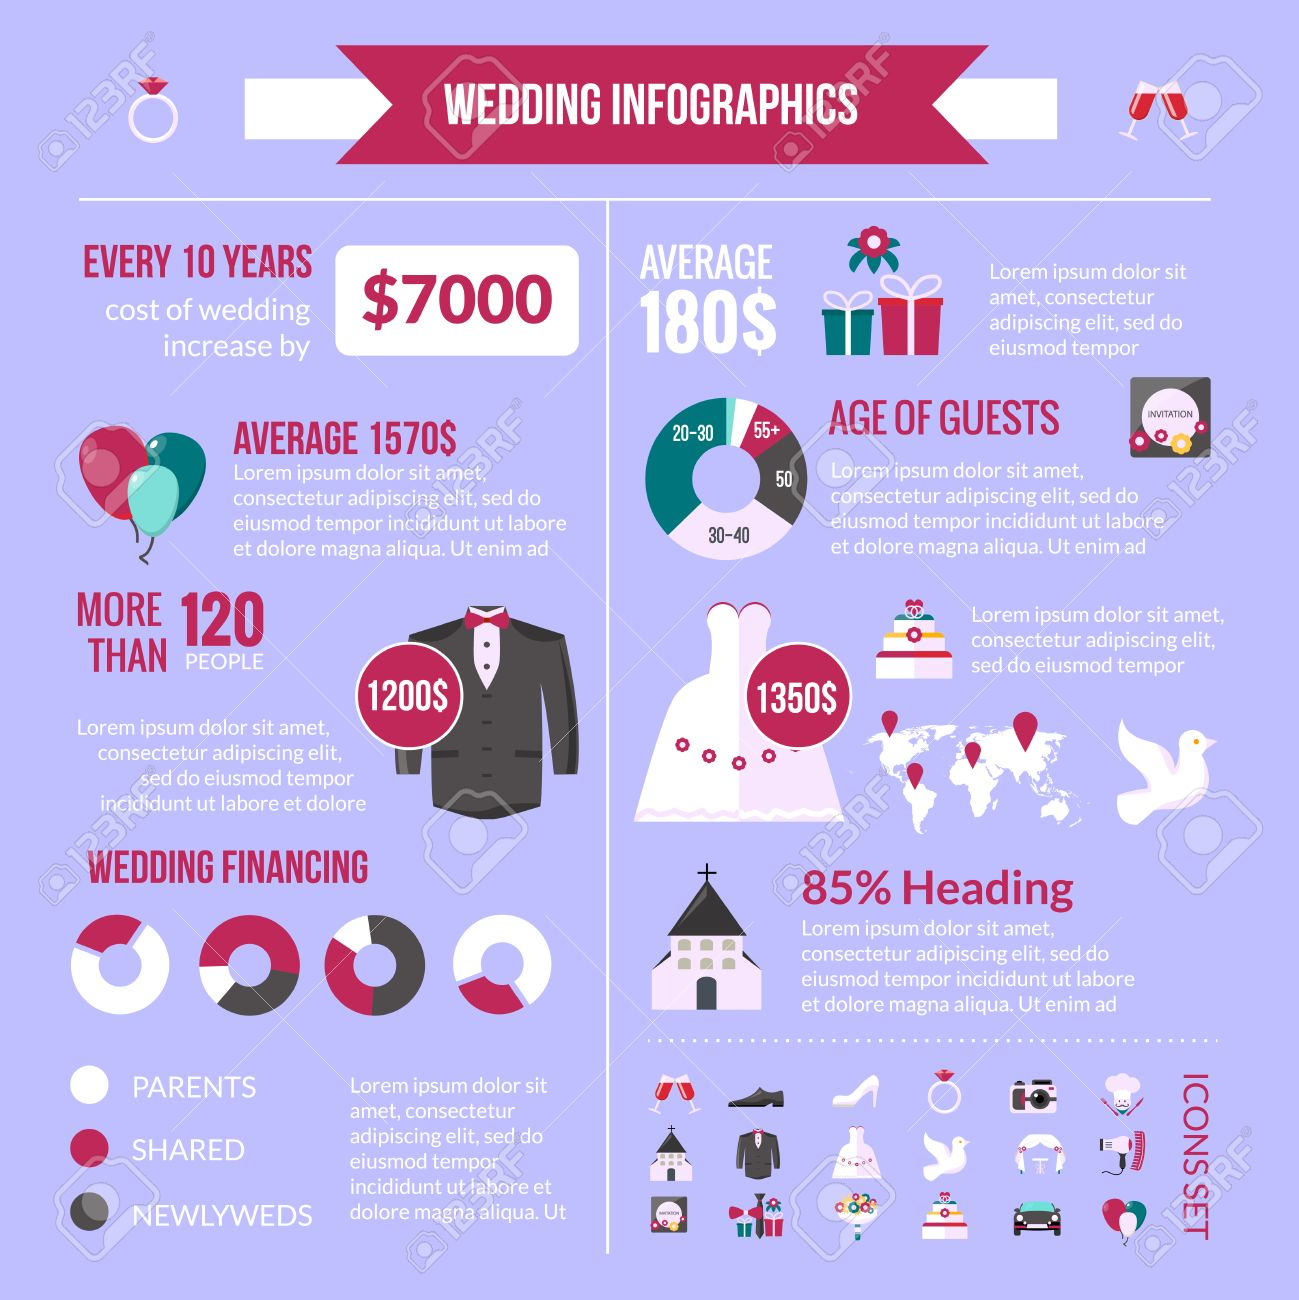 Wedding Ceremony Average Cost For Urban And Country Weddings Infographic  Presentation With Pictograms Diagrams Layout Vector